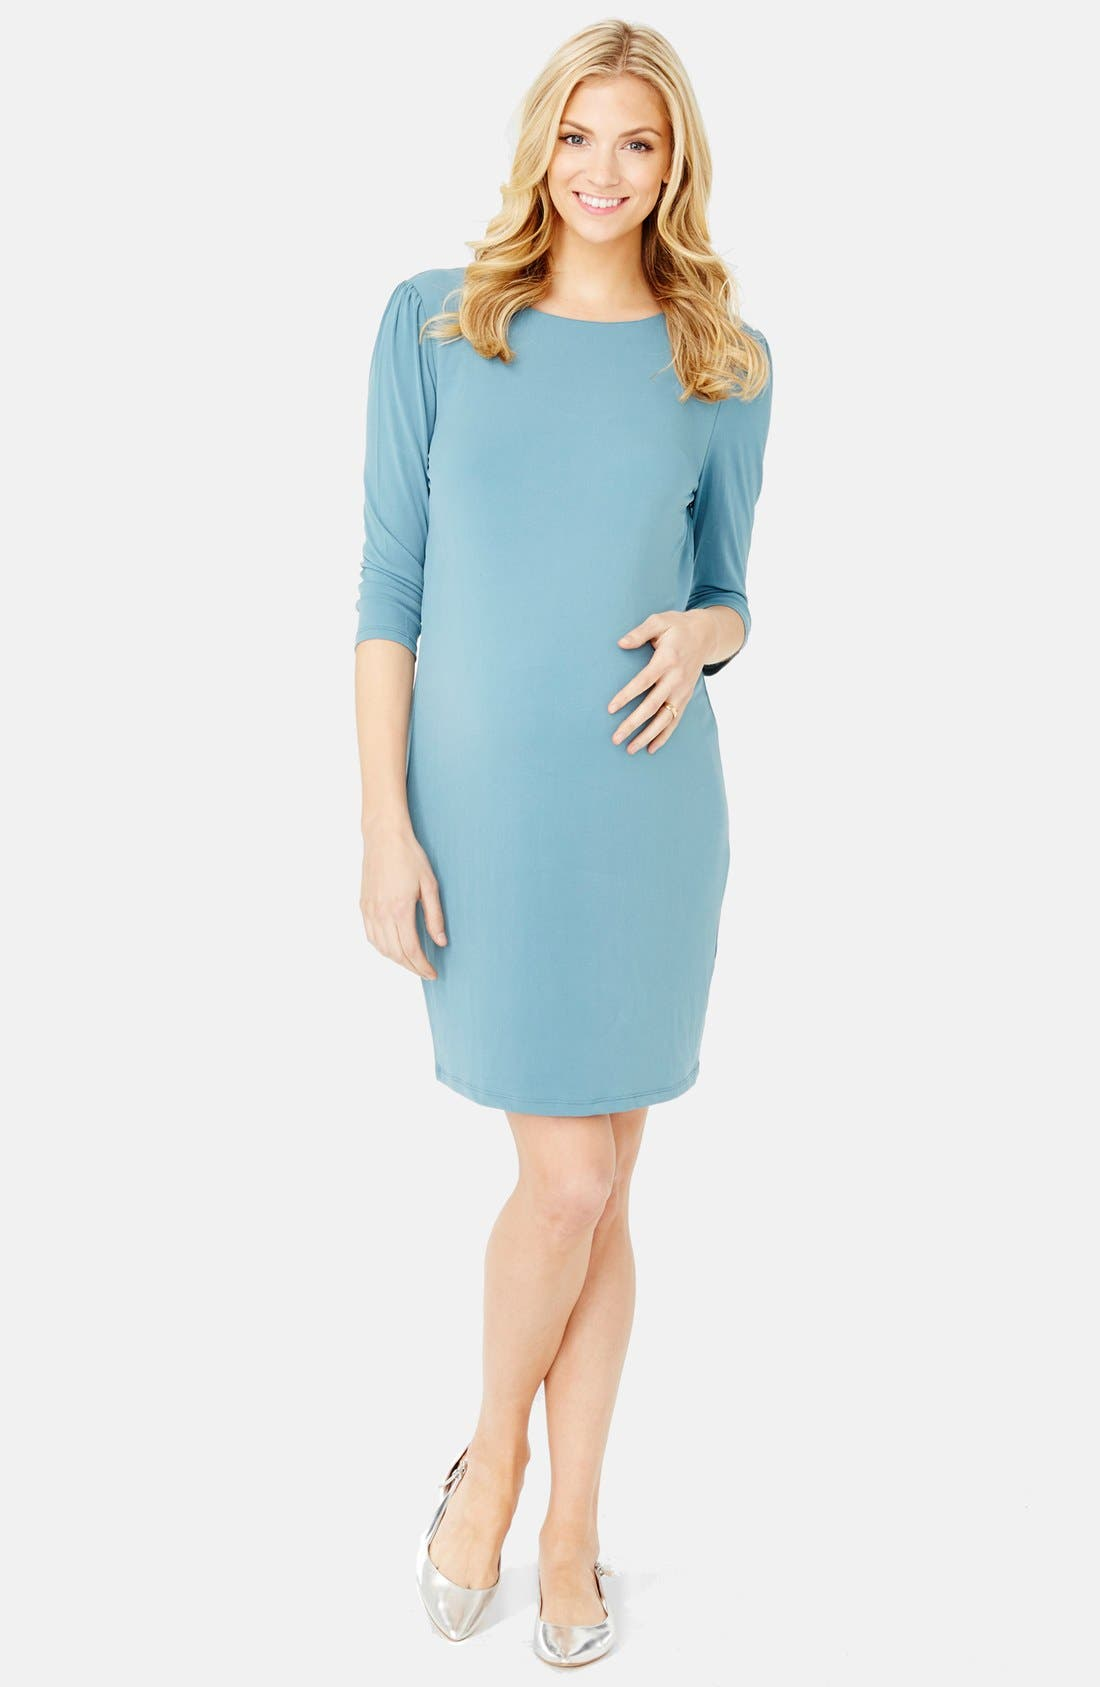 Rosie Pope 'Audra' Maternity Dress